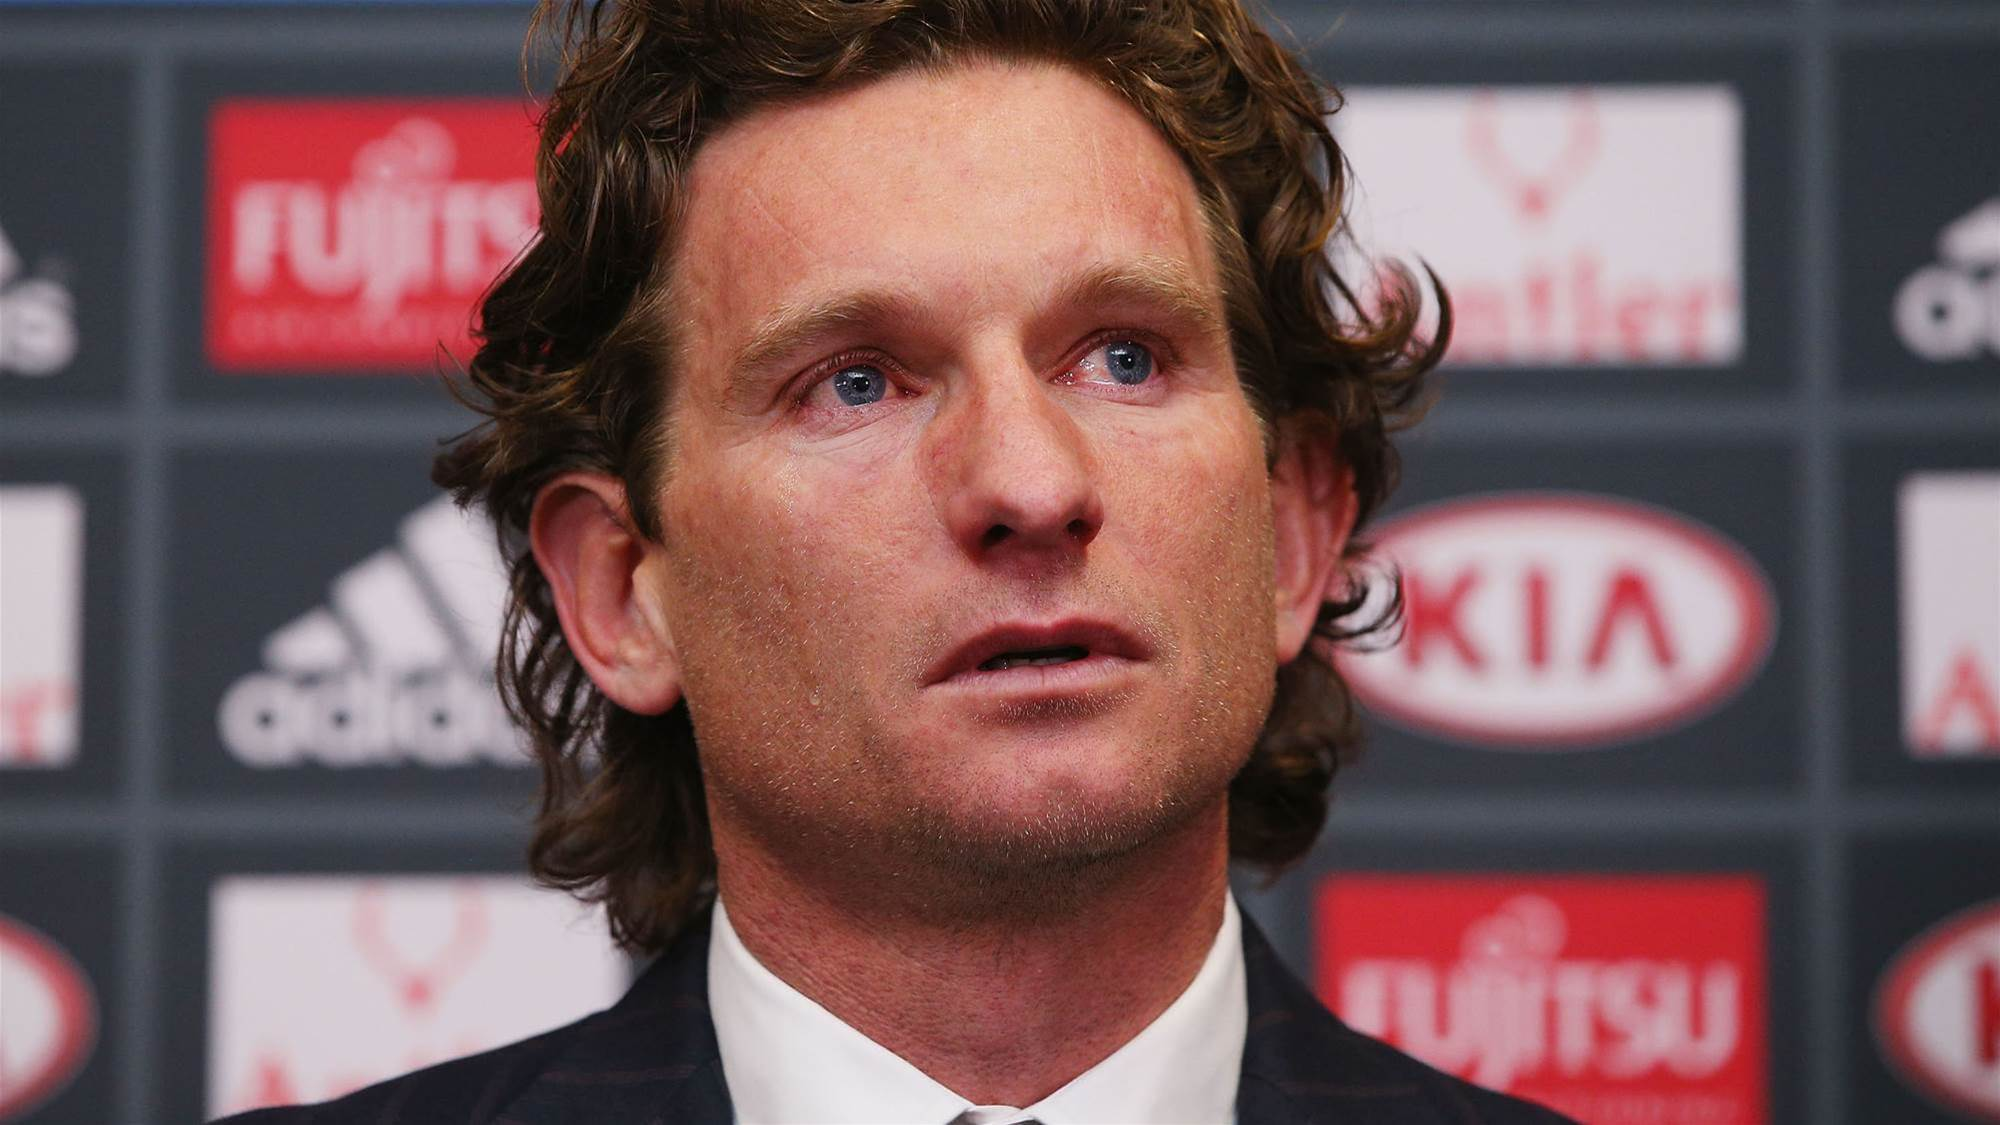 Former coach blasts AFL over Hird silence